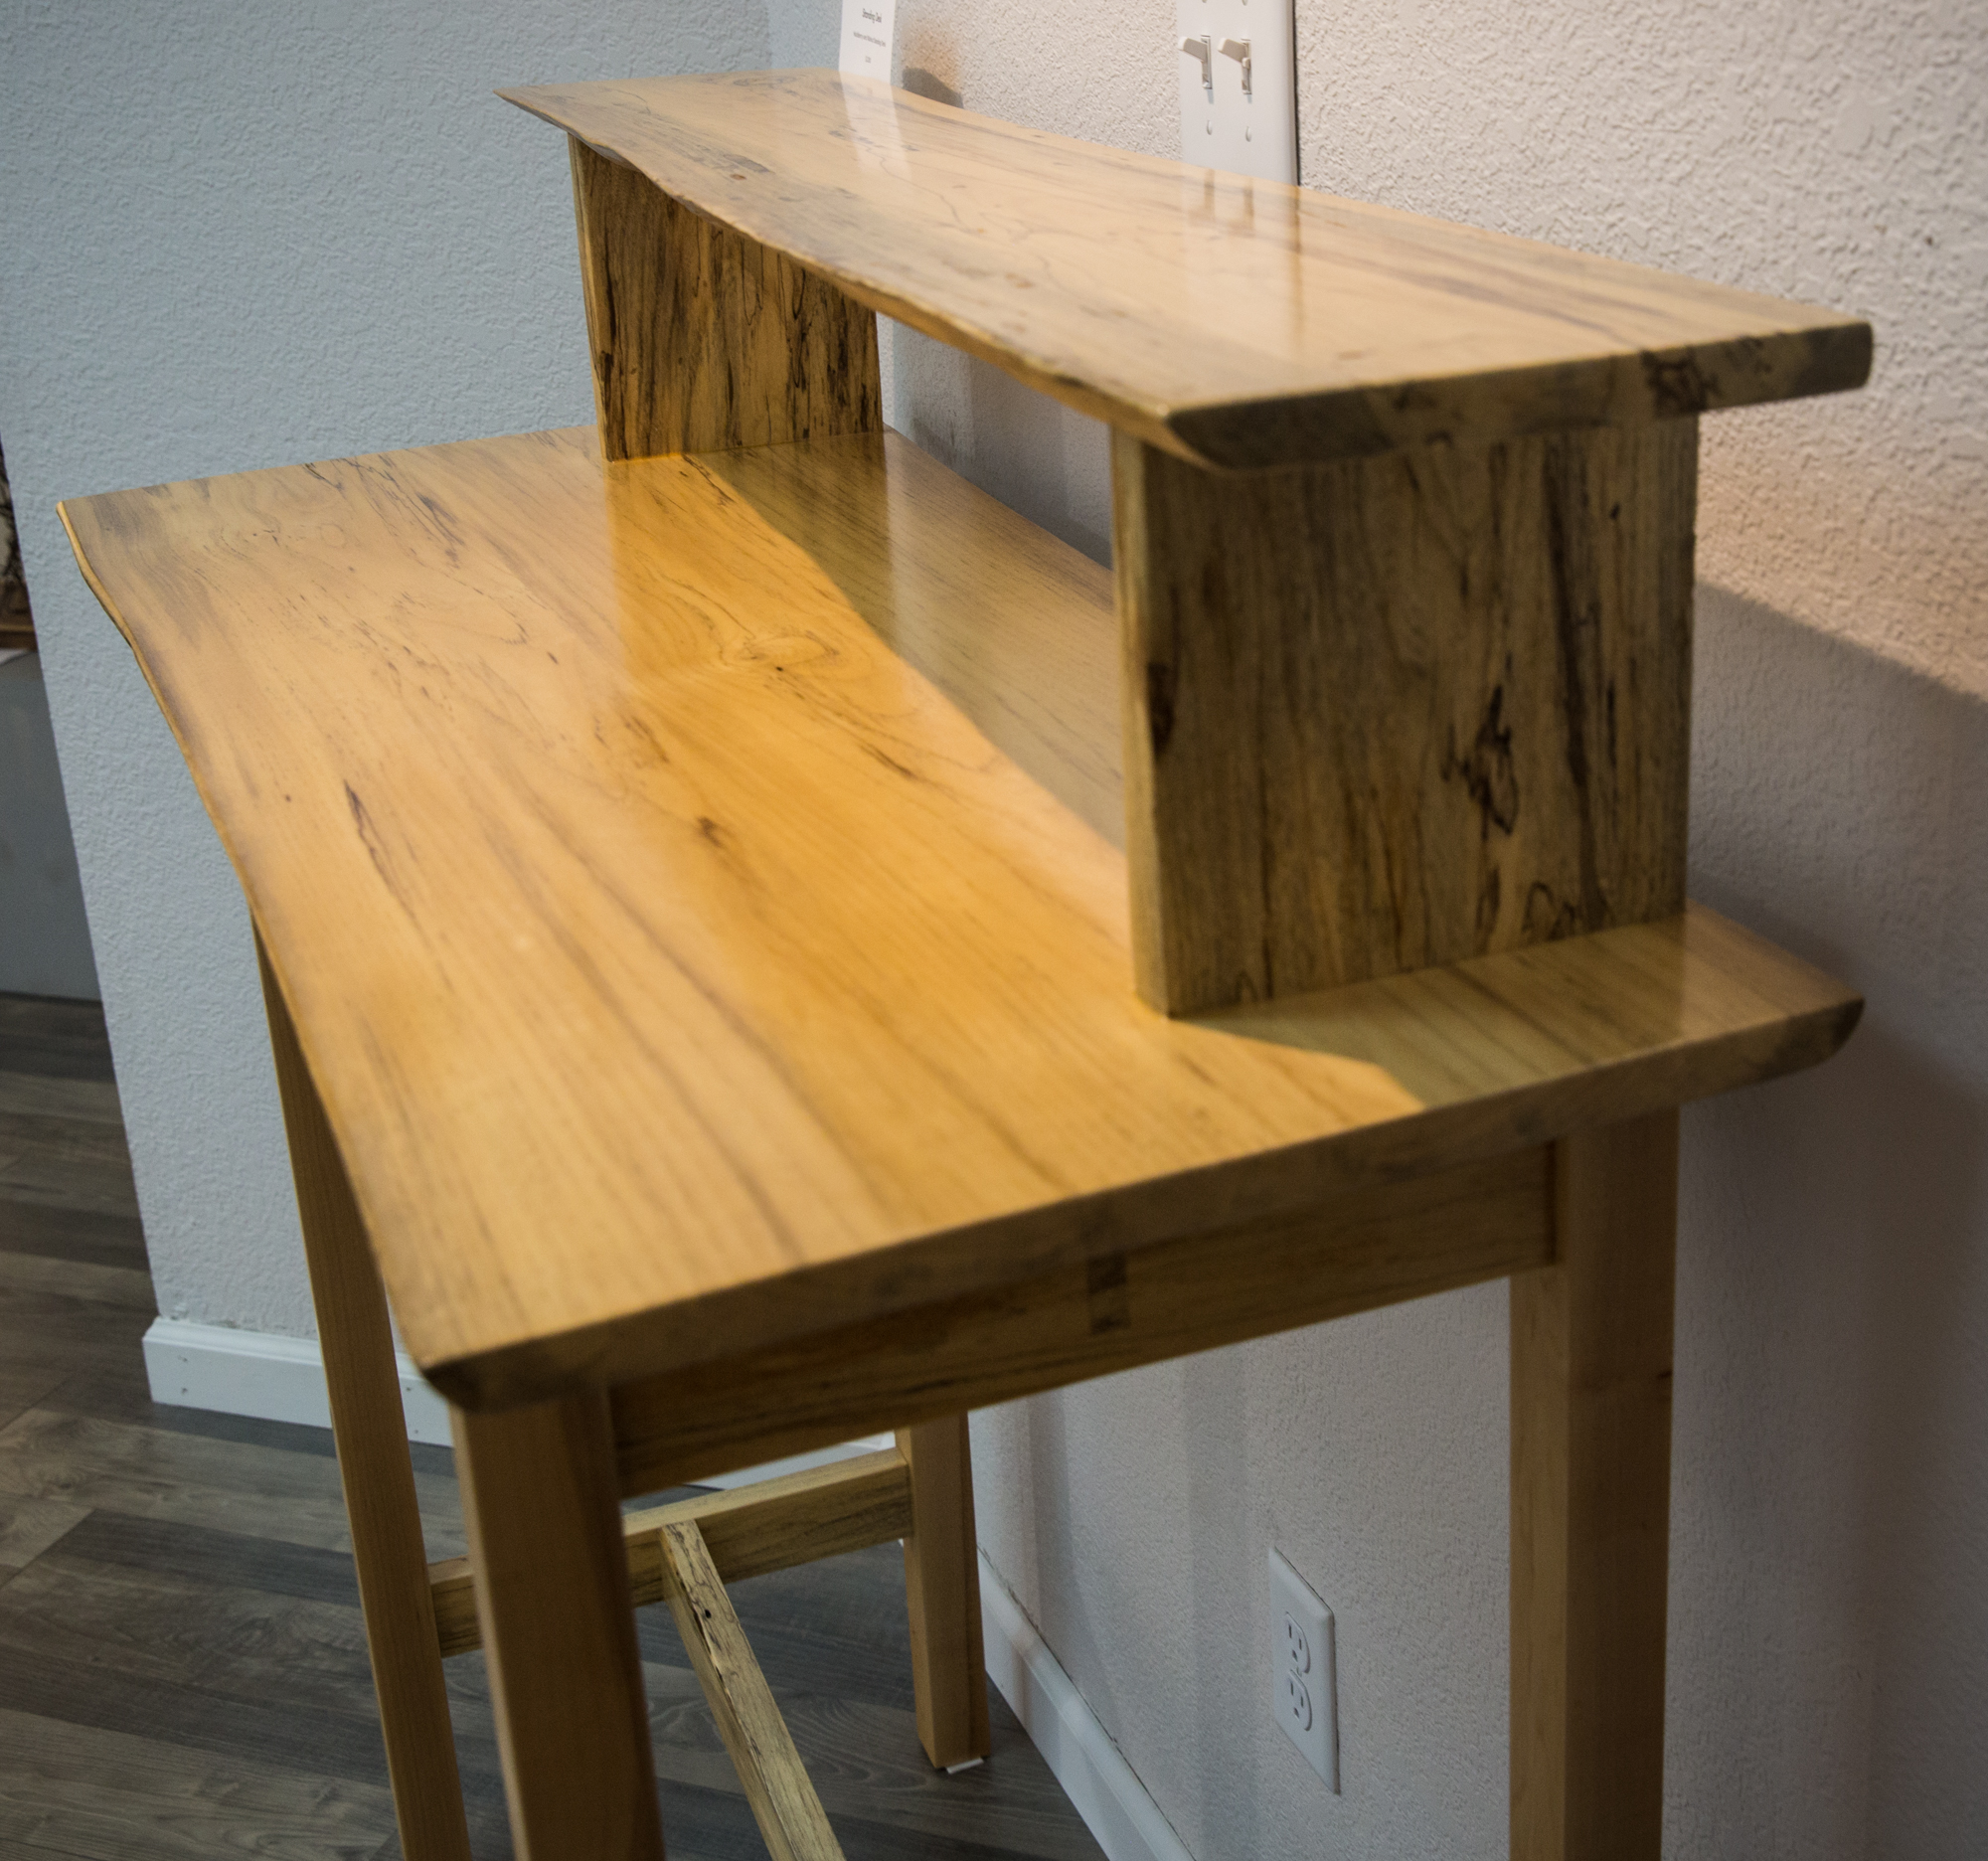 Hackberry and Walnut standing desk by Gary Havener